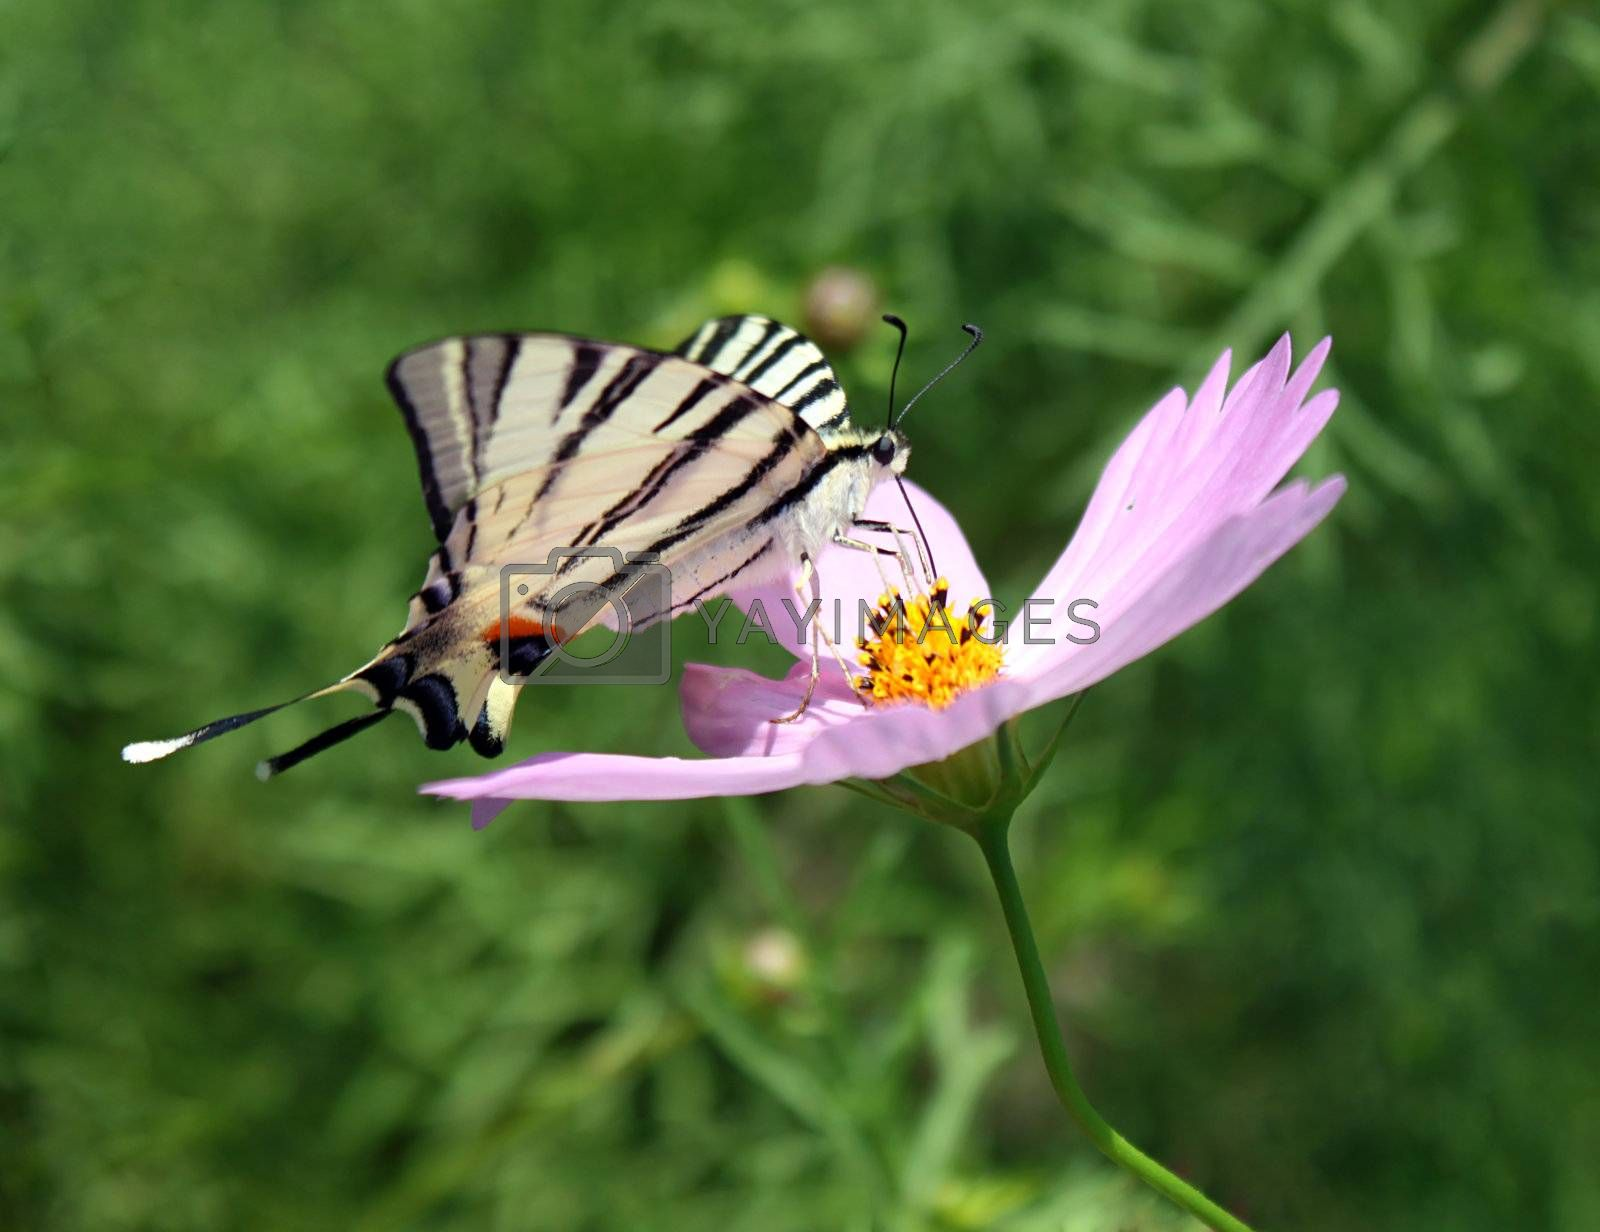 butterfly (Scarce Swallowtail) on flower (cosmos)